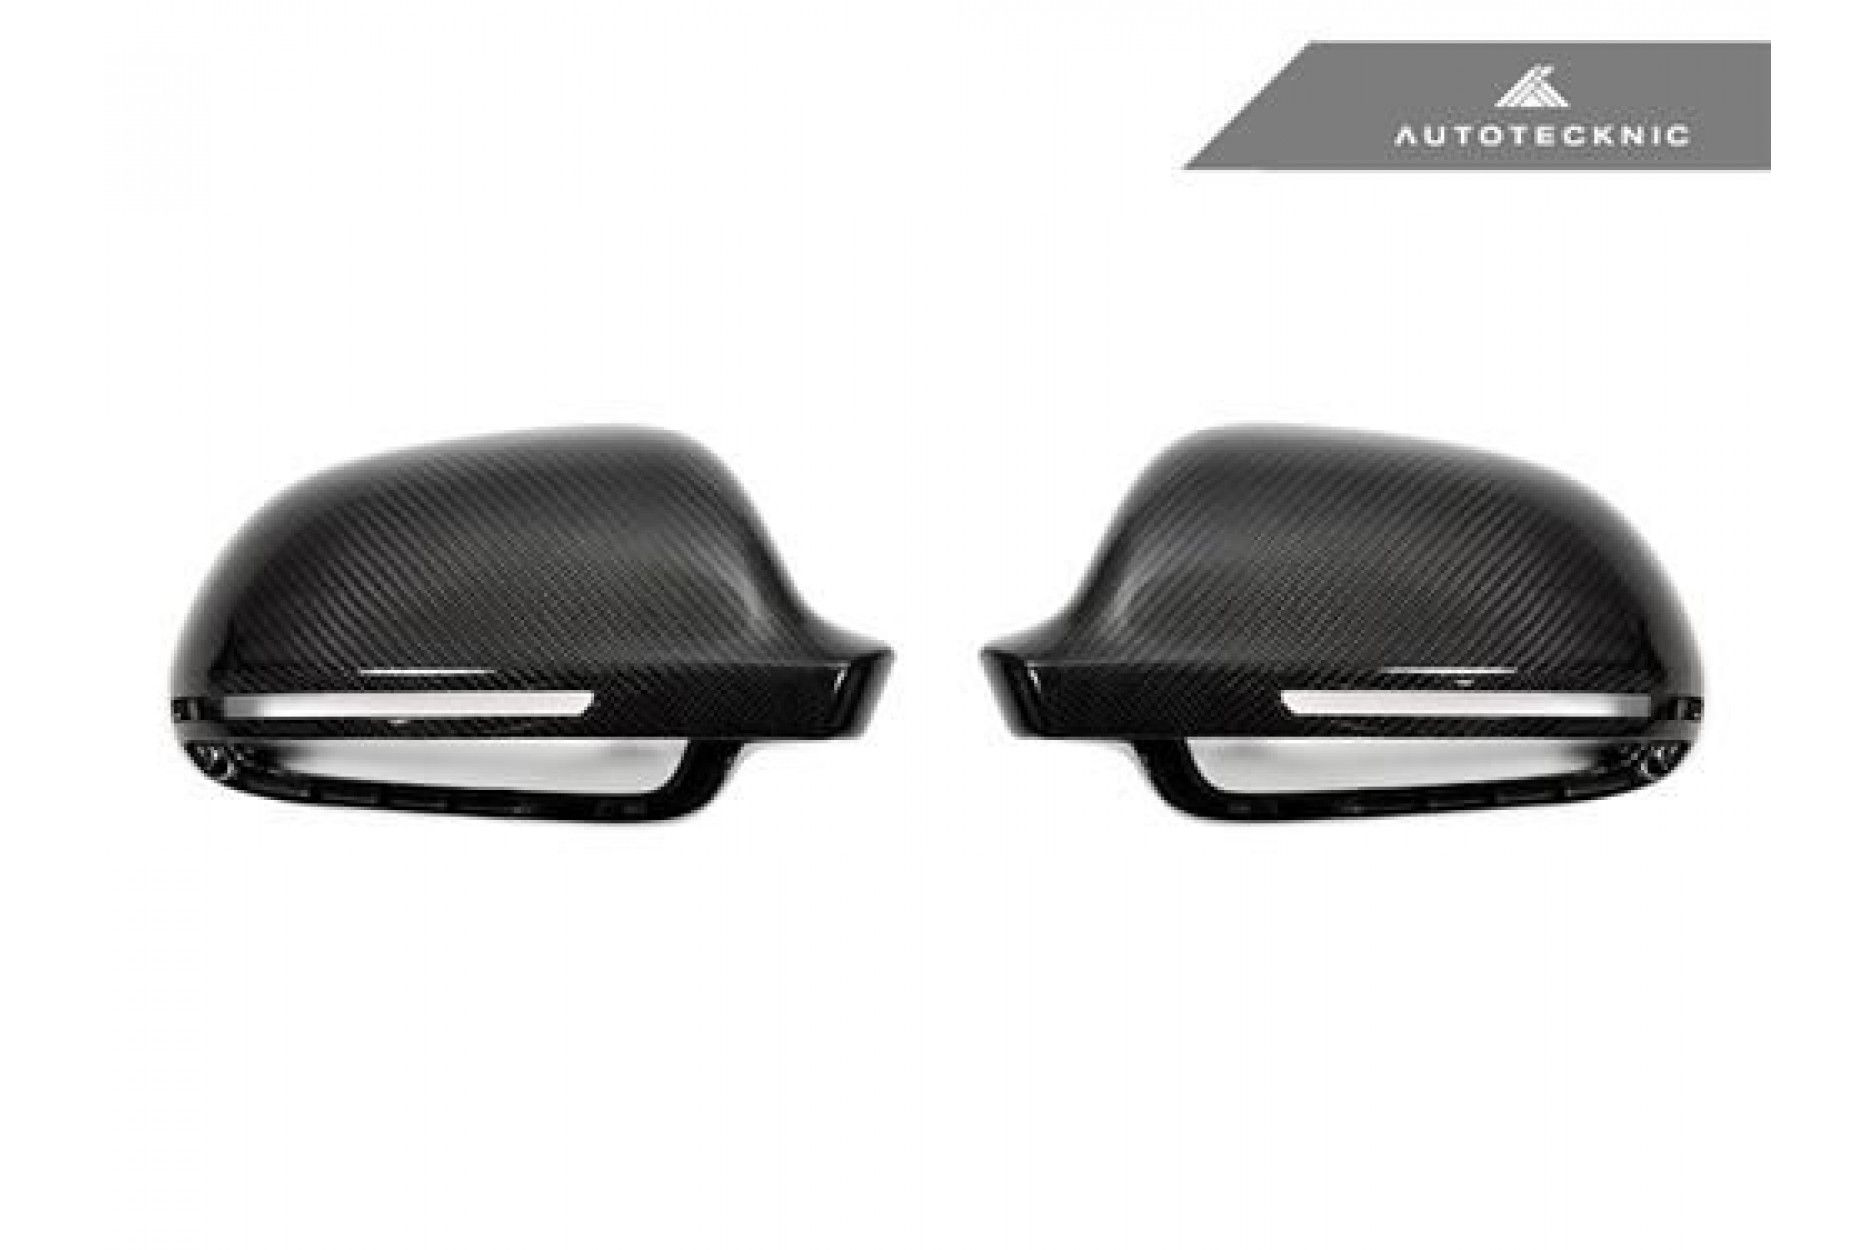 AutoTecknic Replacement Carbon Fiber Mirror Covers - Audi 8P A3/S3 | B8 A4/S4 | 8T A5/S5 without Side Assist